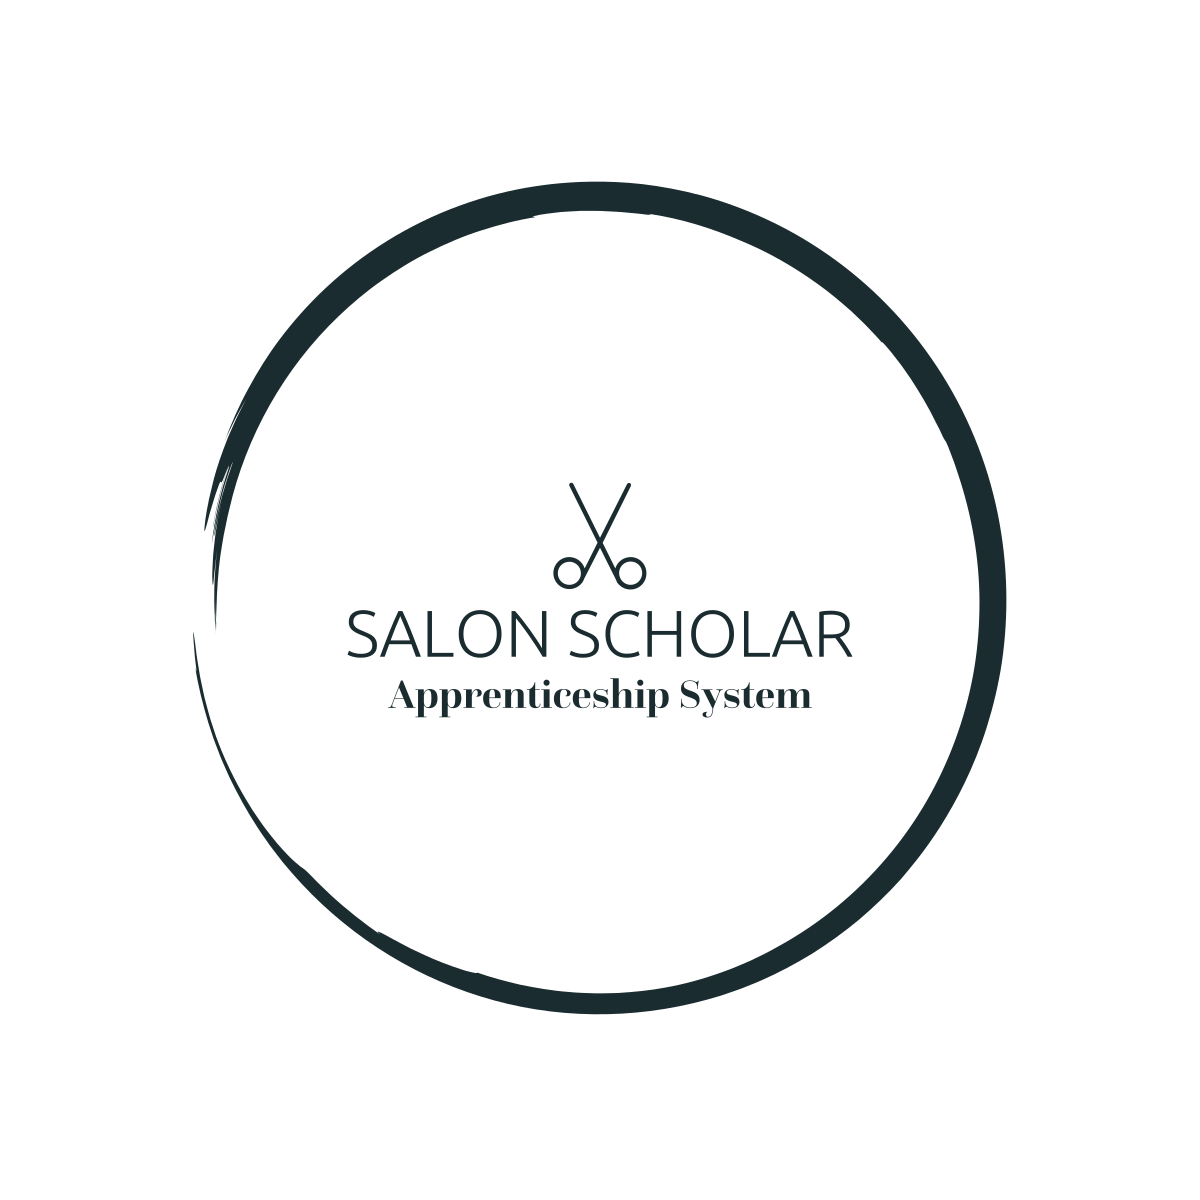 LET US TRAIN YOUR SALON NEW-HIRE  This is a 4-month, live instructor-led, apprenticeship system to prepare your new-hires for success!  Click the logo to get started!